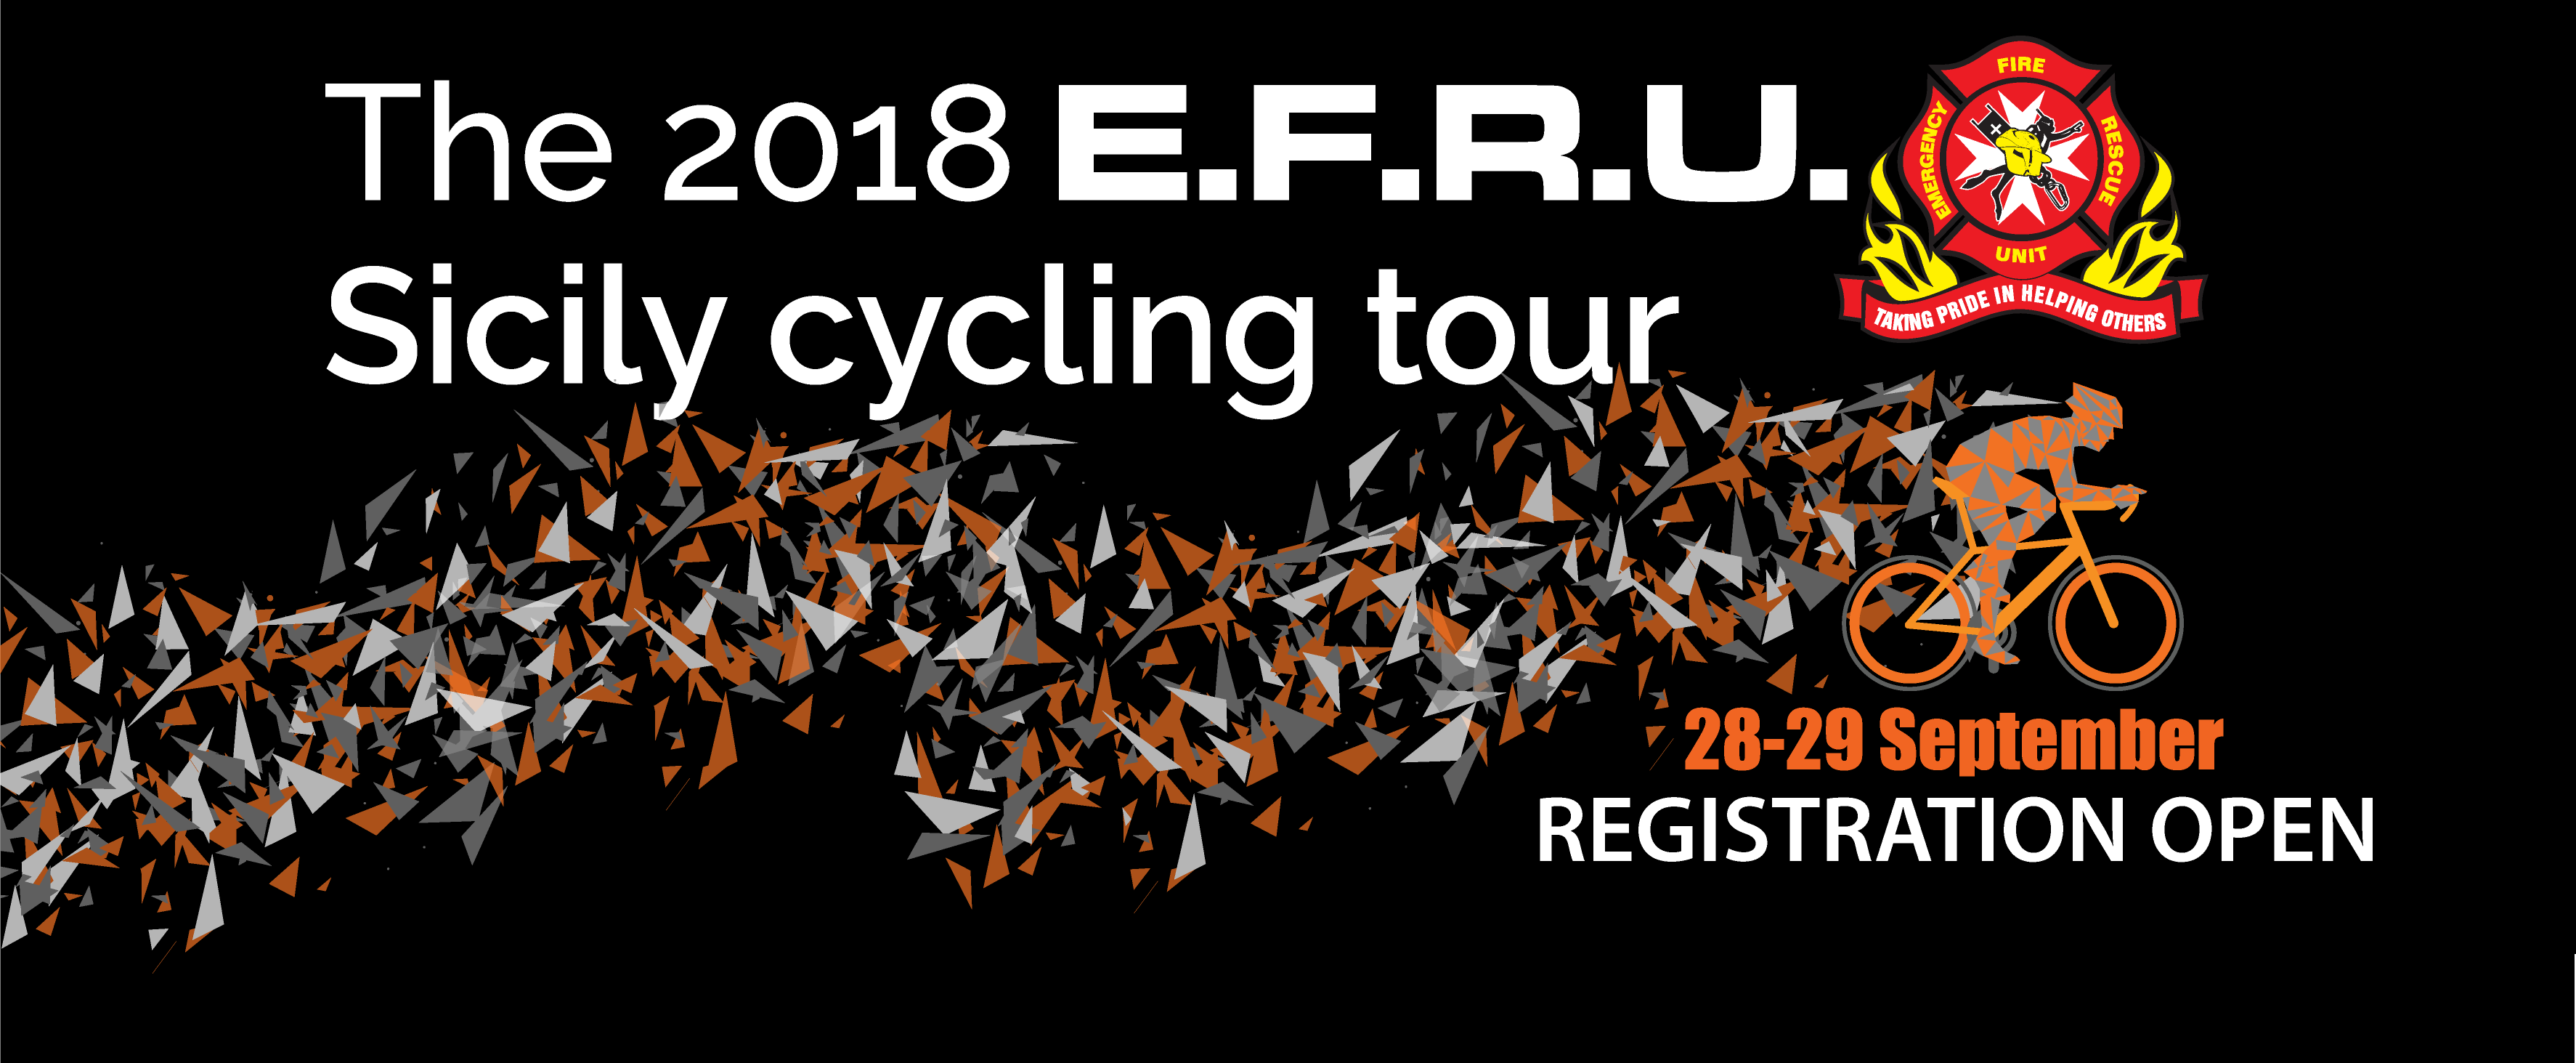 The 2018 E.F.R.U. Sicily cycling tour